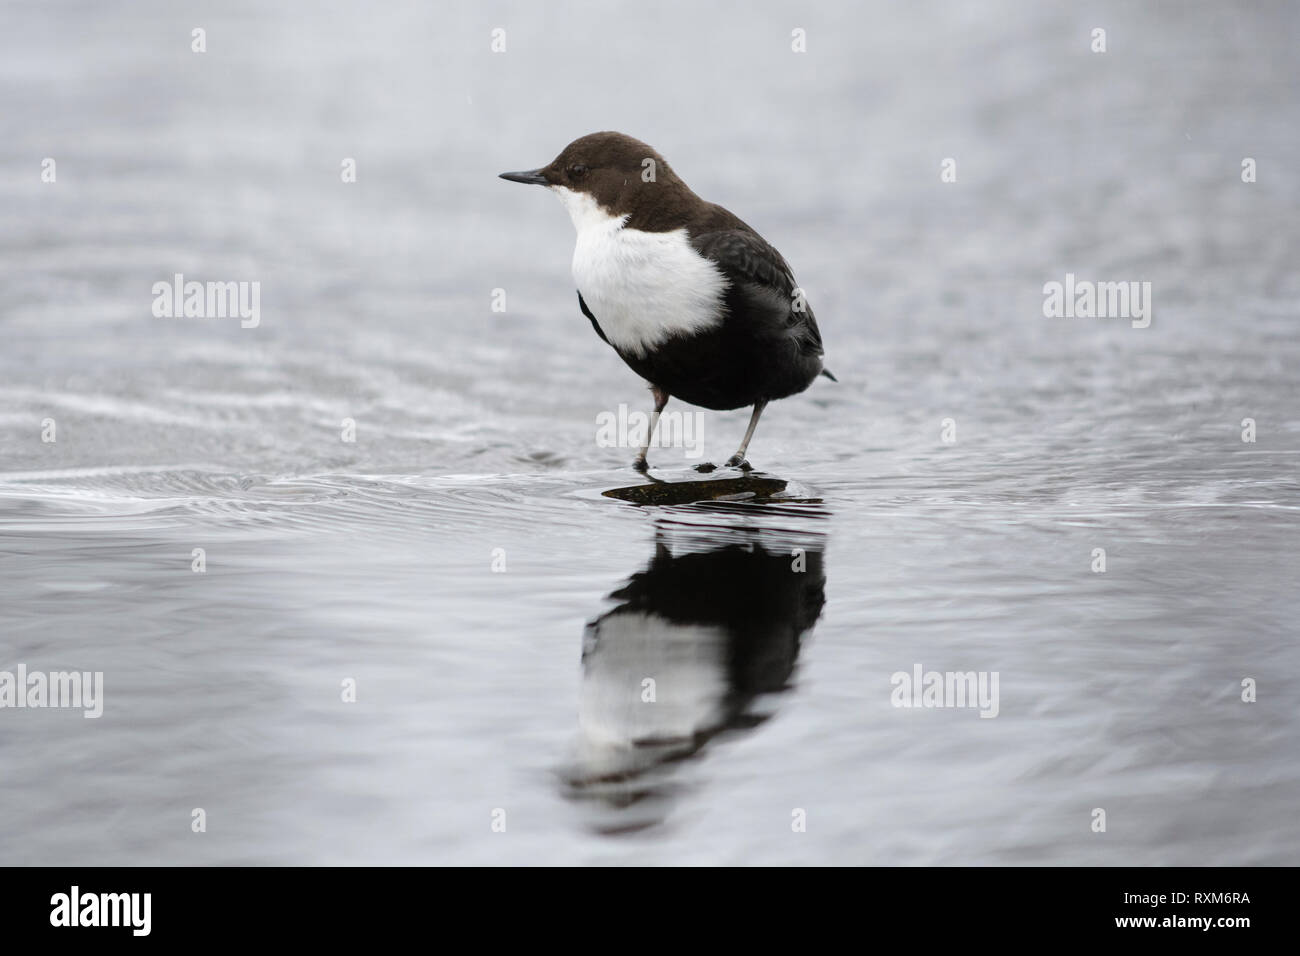 Black-bellied dipper in a streaming river during winter, Kuusamo, Finland - Stock Image